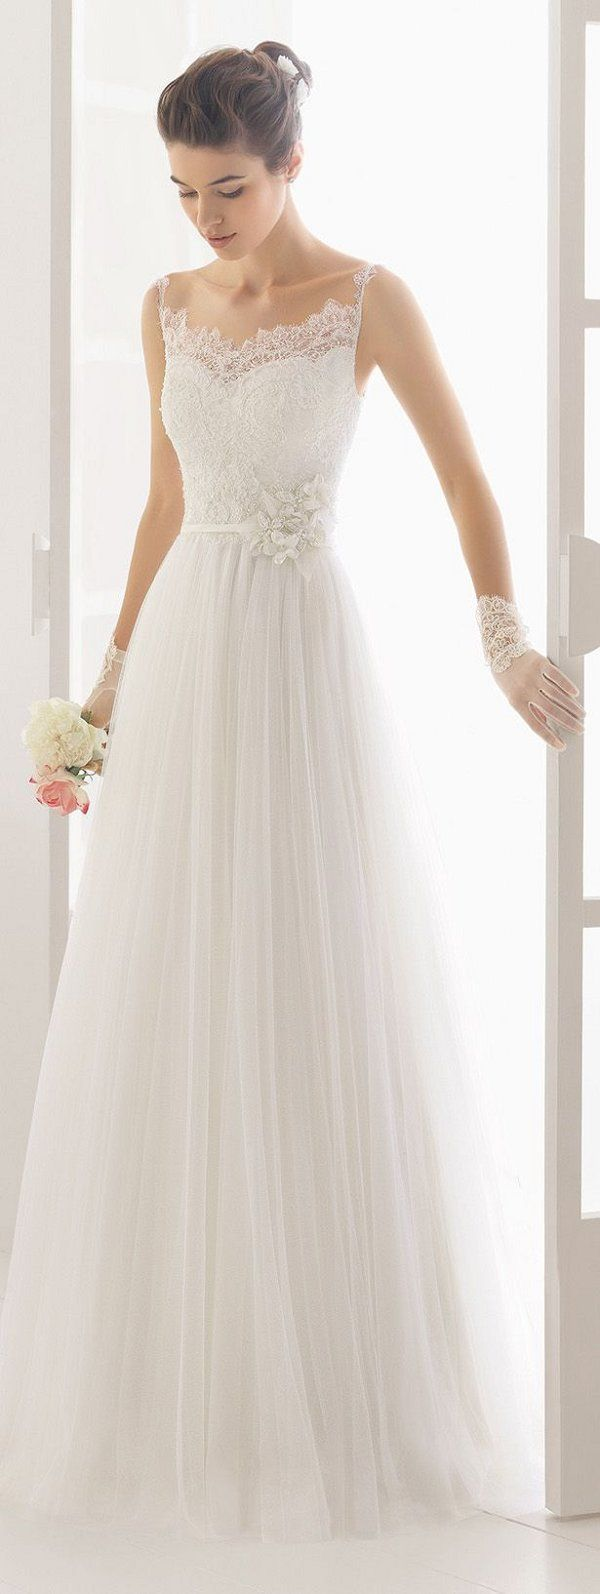 wedding dress simple simple elegant wedding dress 25 Best Ideas about Wedding Dress Simple on Pinterest Simple wedding gowns Simple classy wedding dress and Lace top wedding gowns